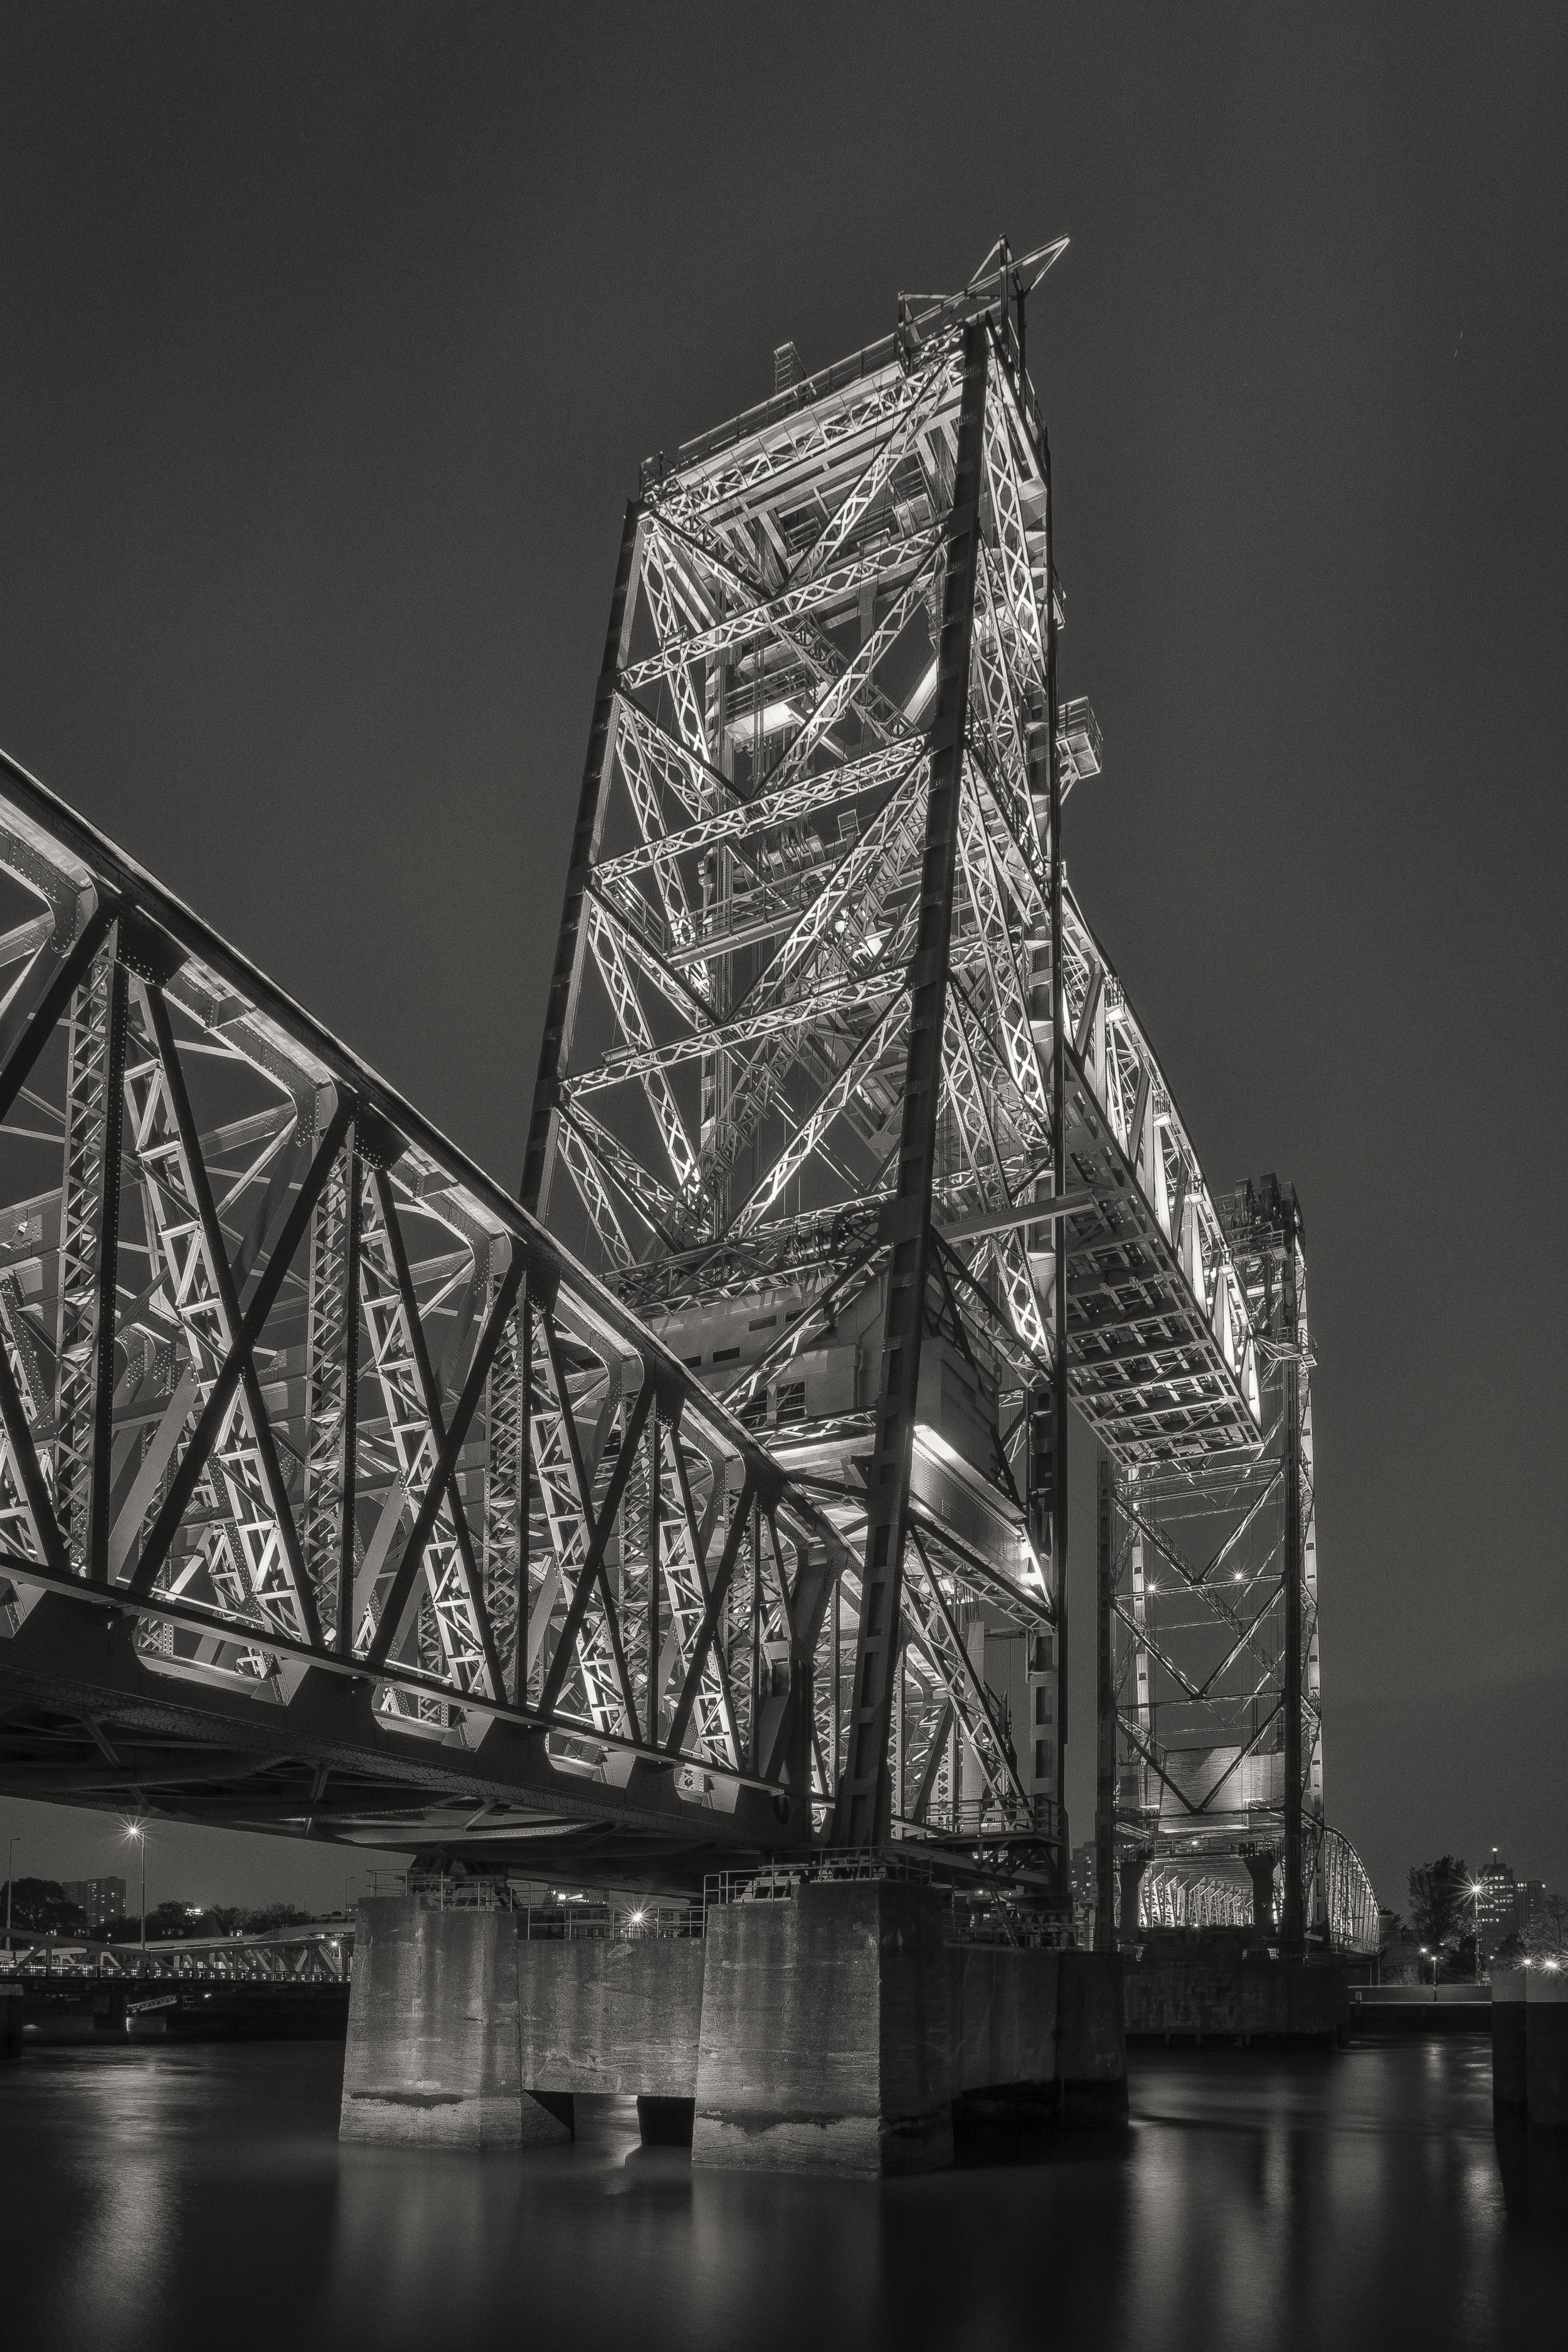 former trainbridge 'De Hef' by night (Monochrome)